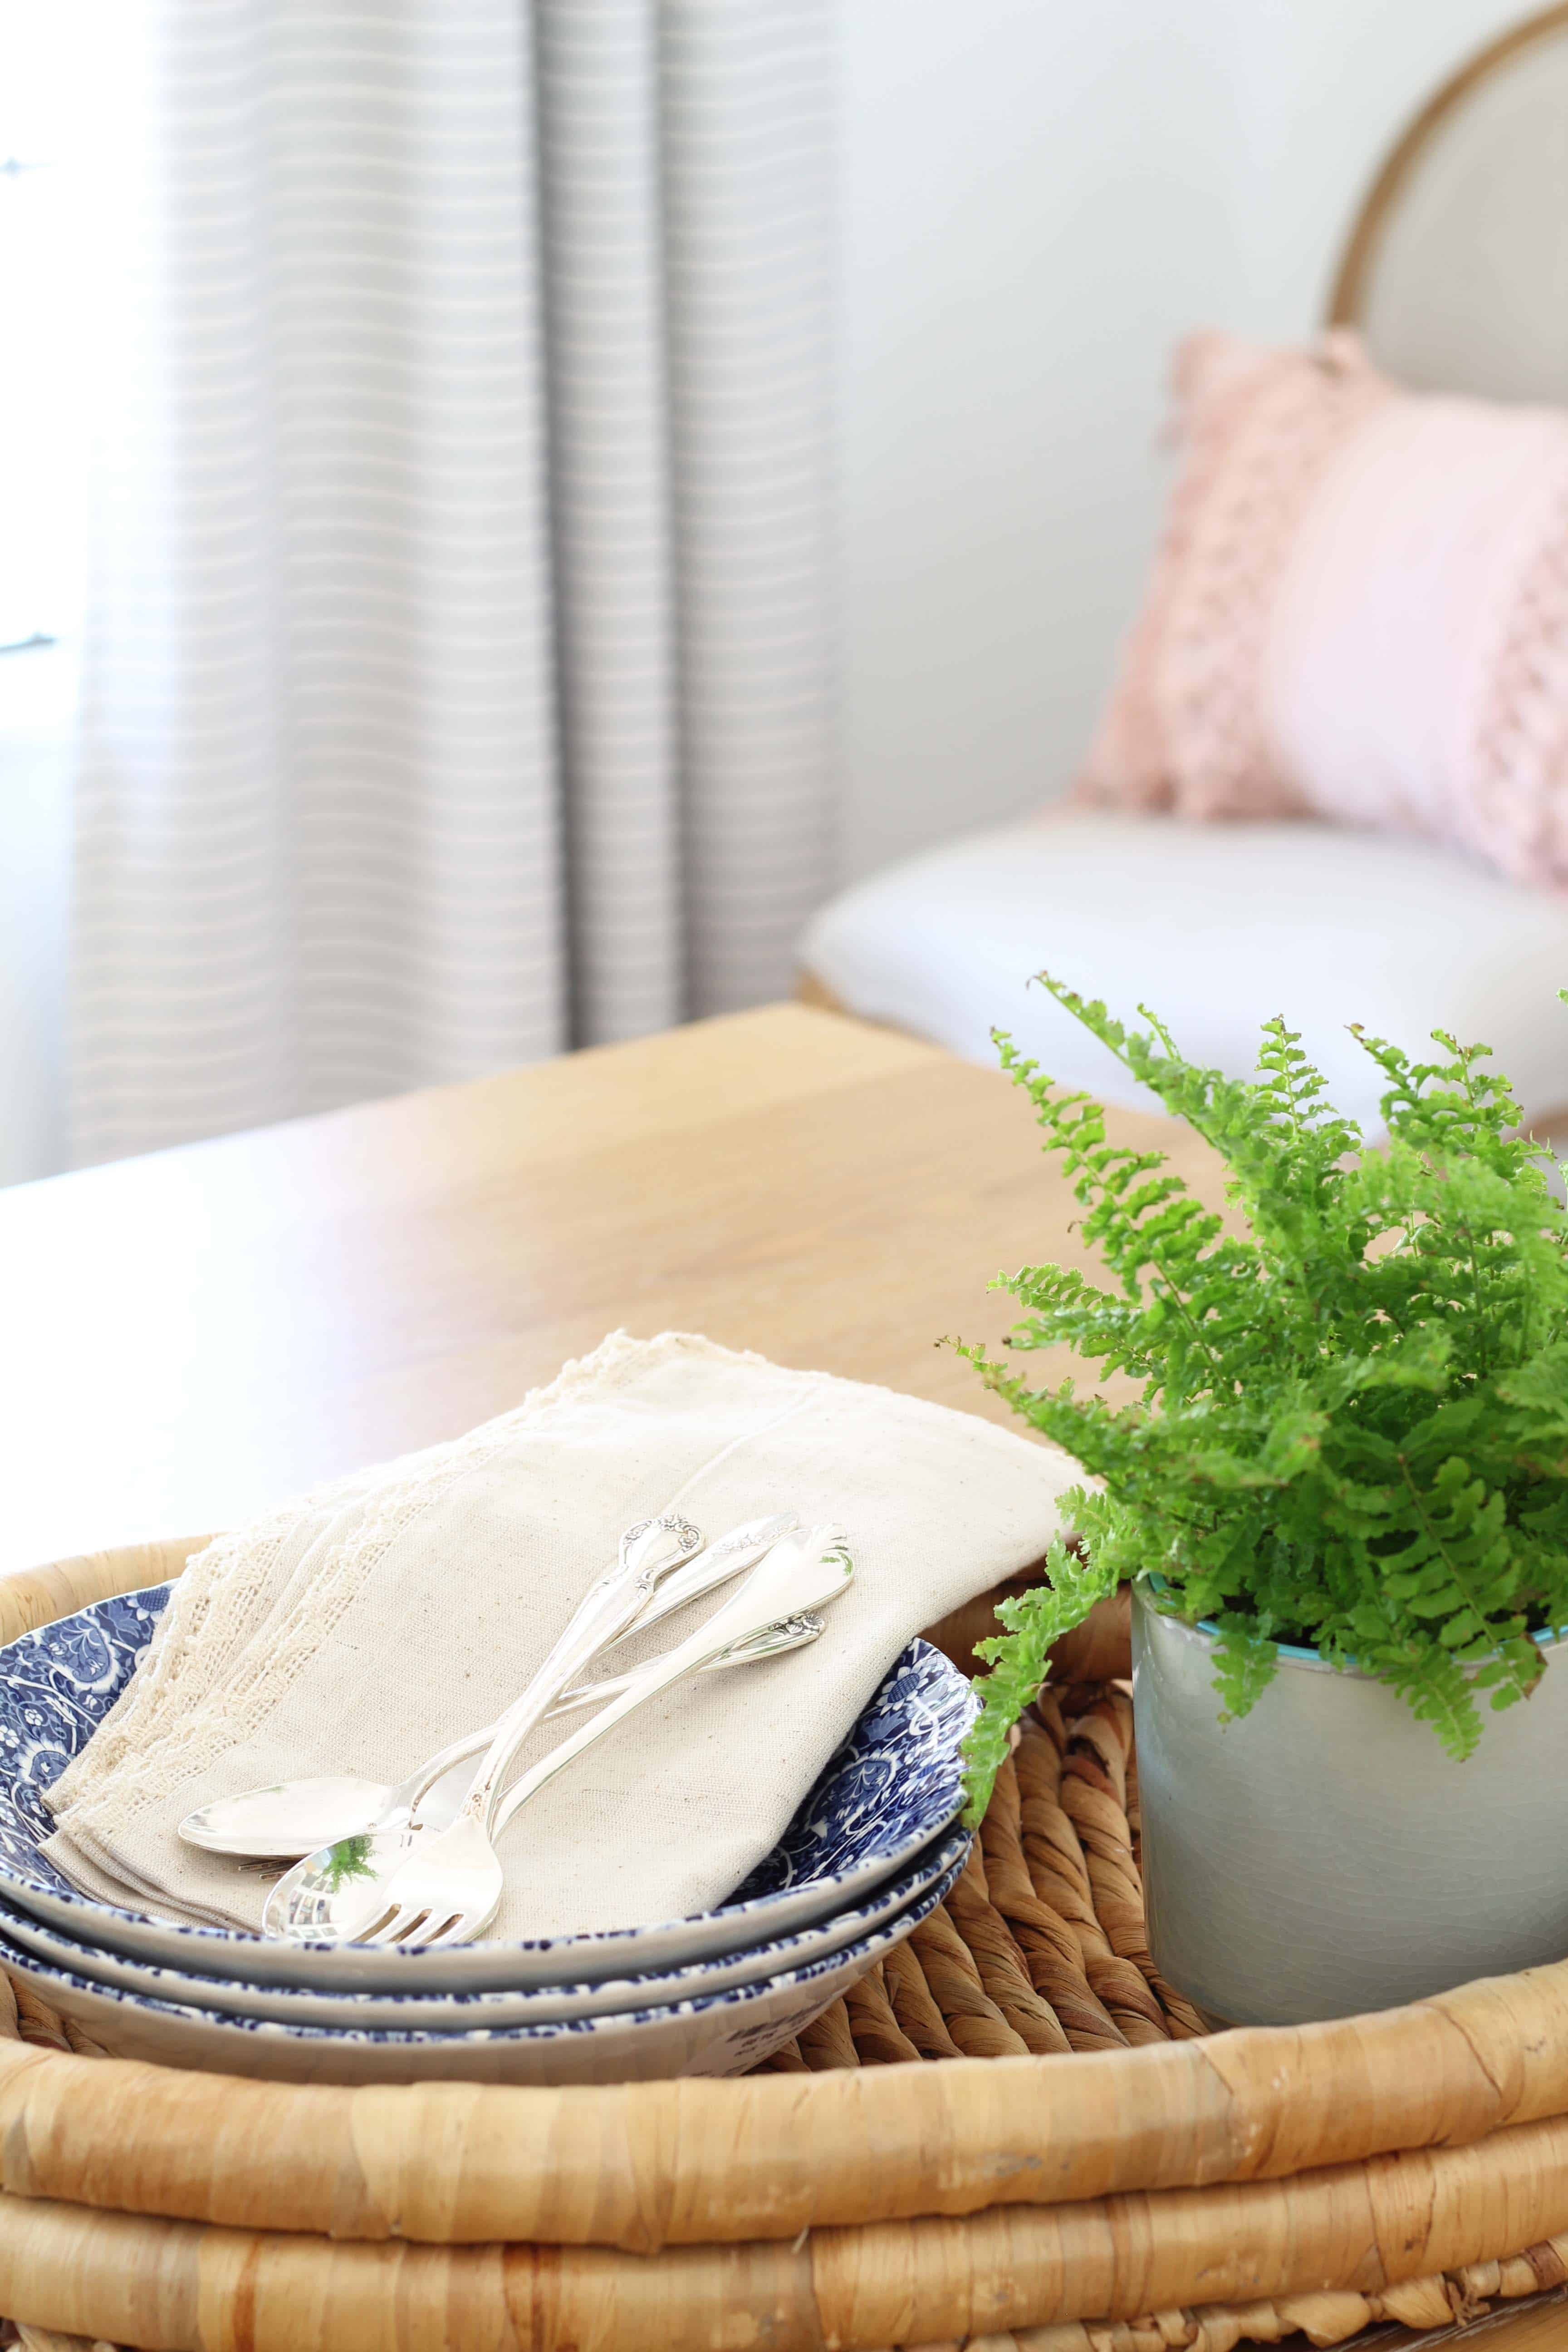 stone and beam striped curtains, fern in aqua pot, blue transfer ware with antique silverware